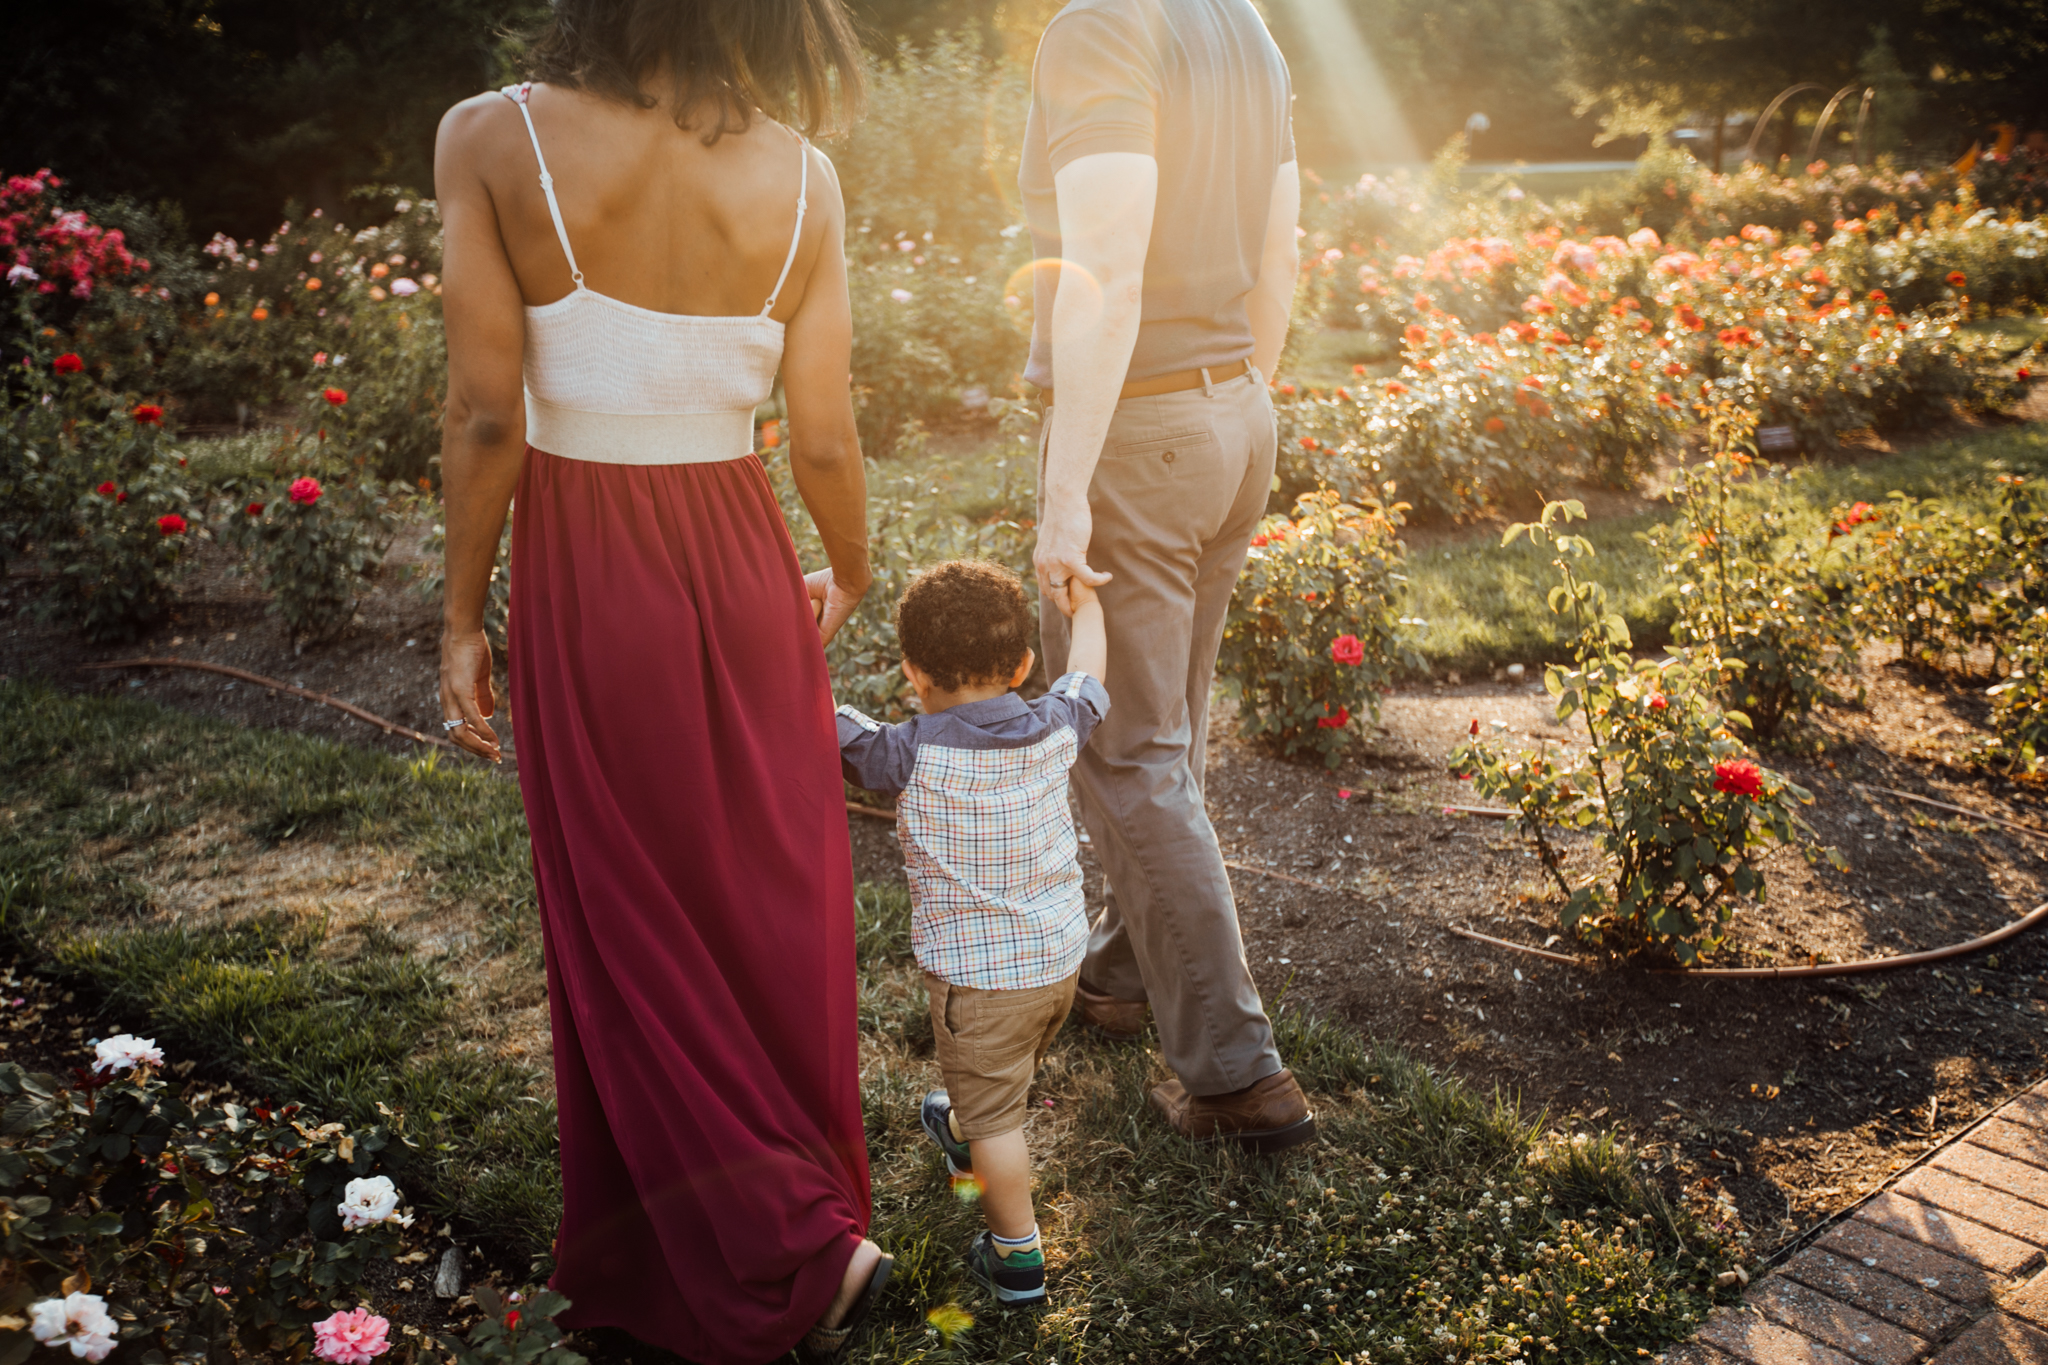 Mom and dad hold toddler's hand in rose gardens by Madison and Huntsville Alabama family photographer Rachel K Photo